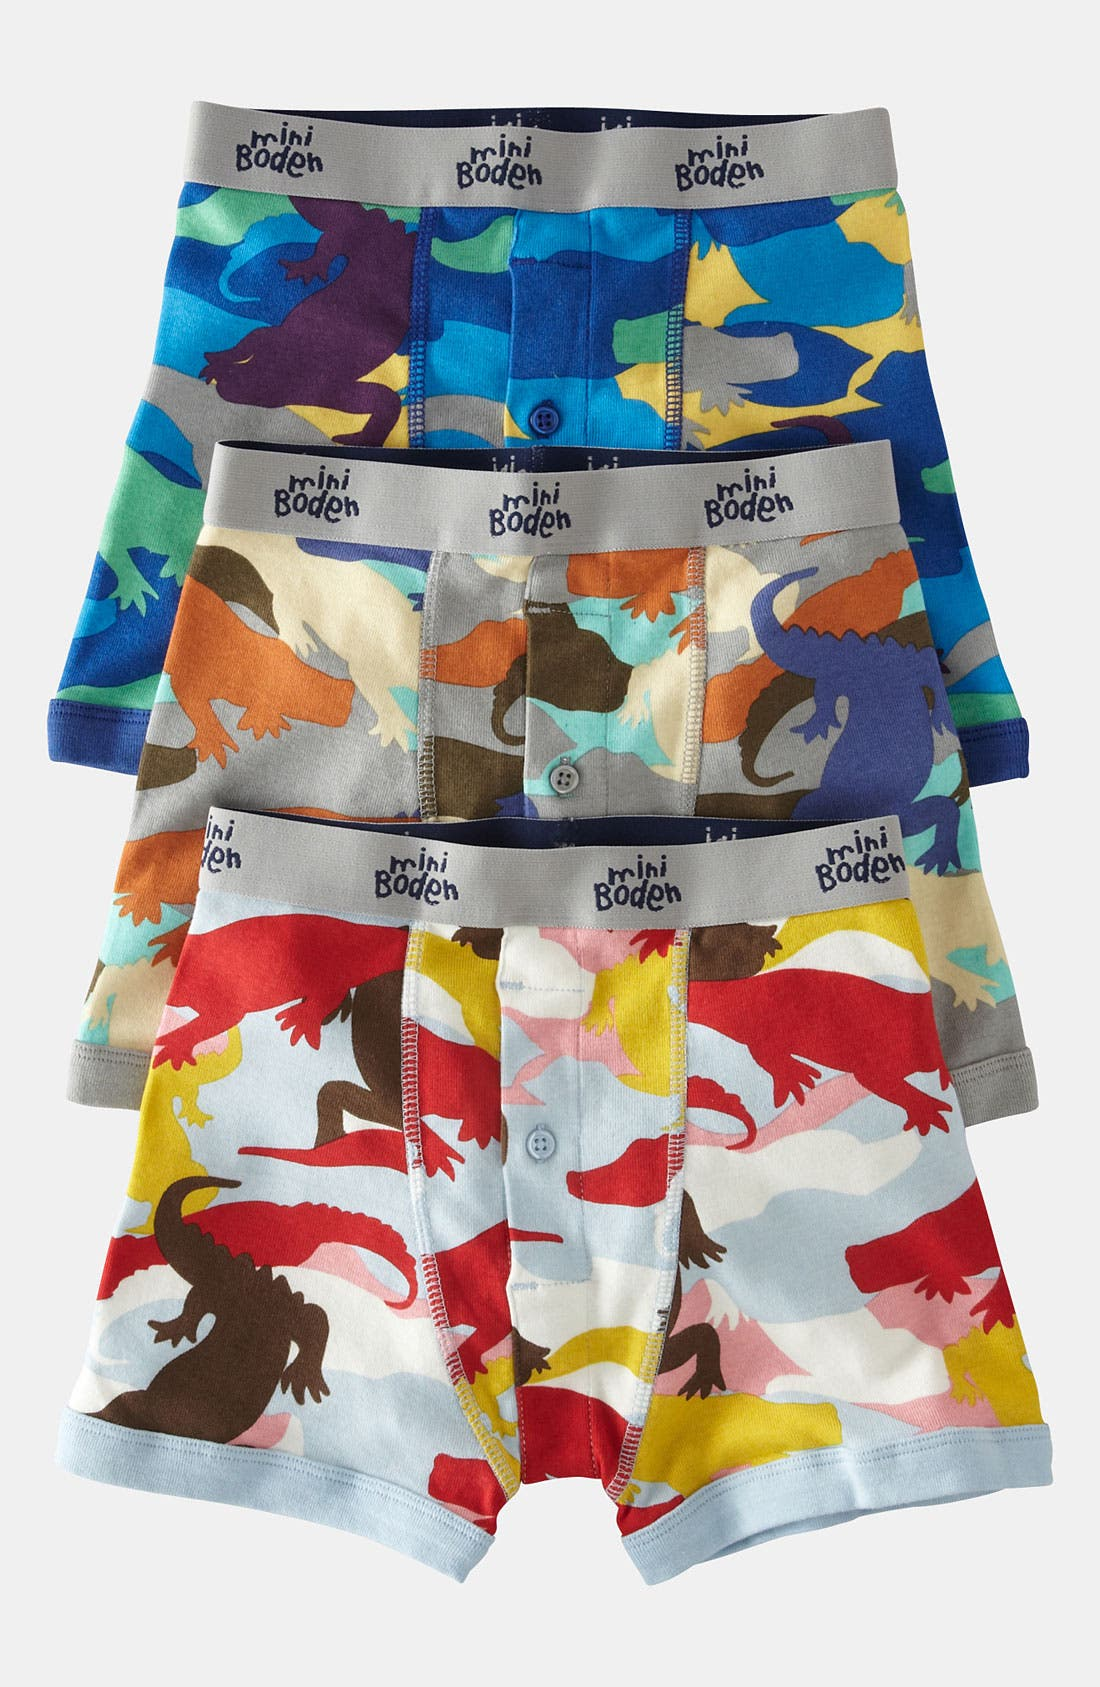 Alternate Image 1 Selected - Mini Boden Boxers (3-Pack) (Toddler, Little Boys & Big Boys)